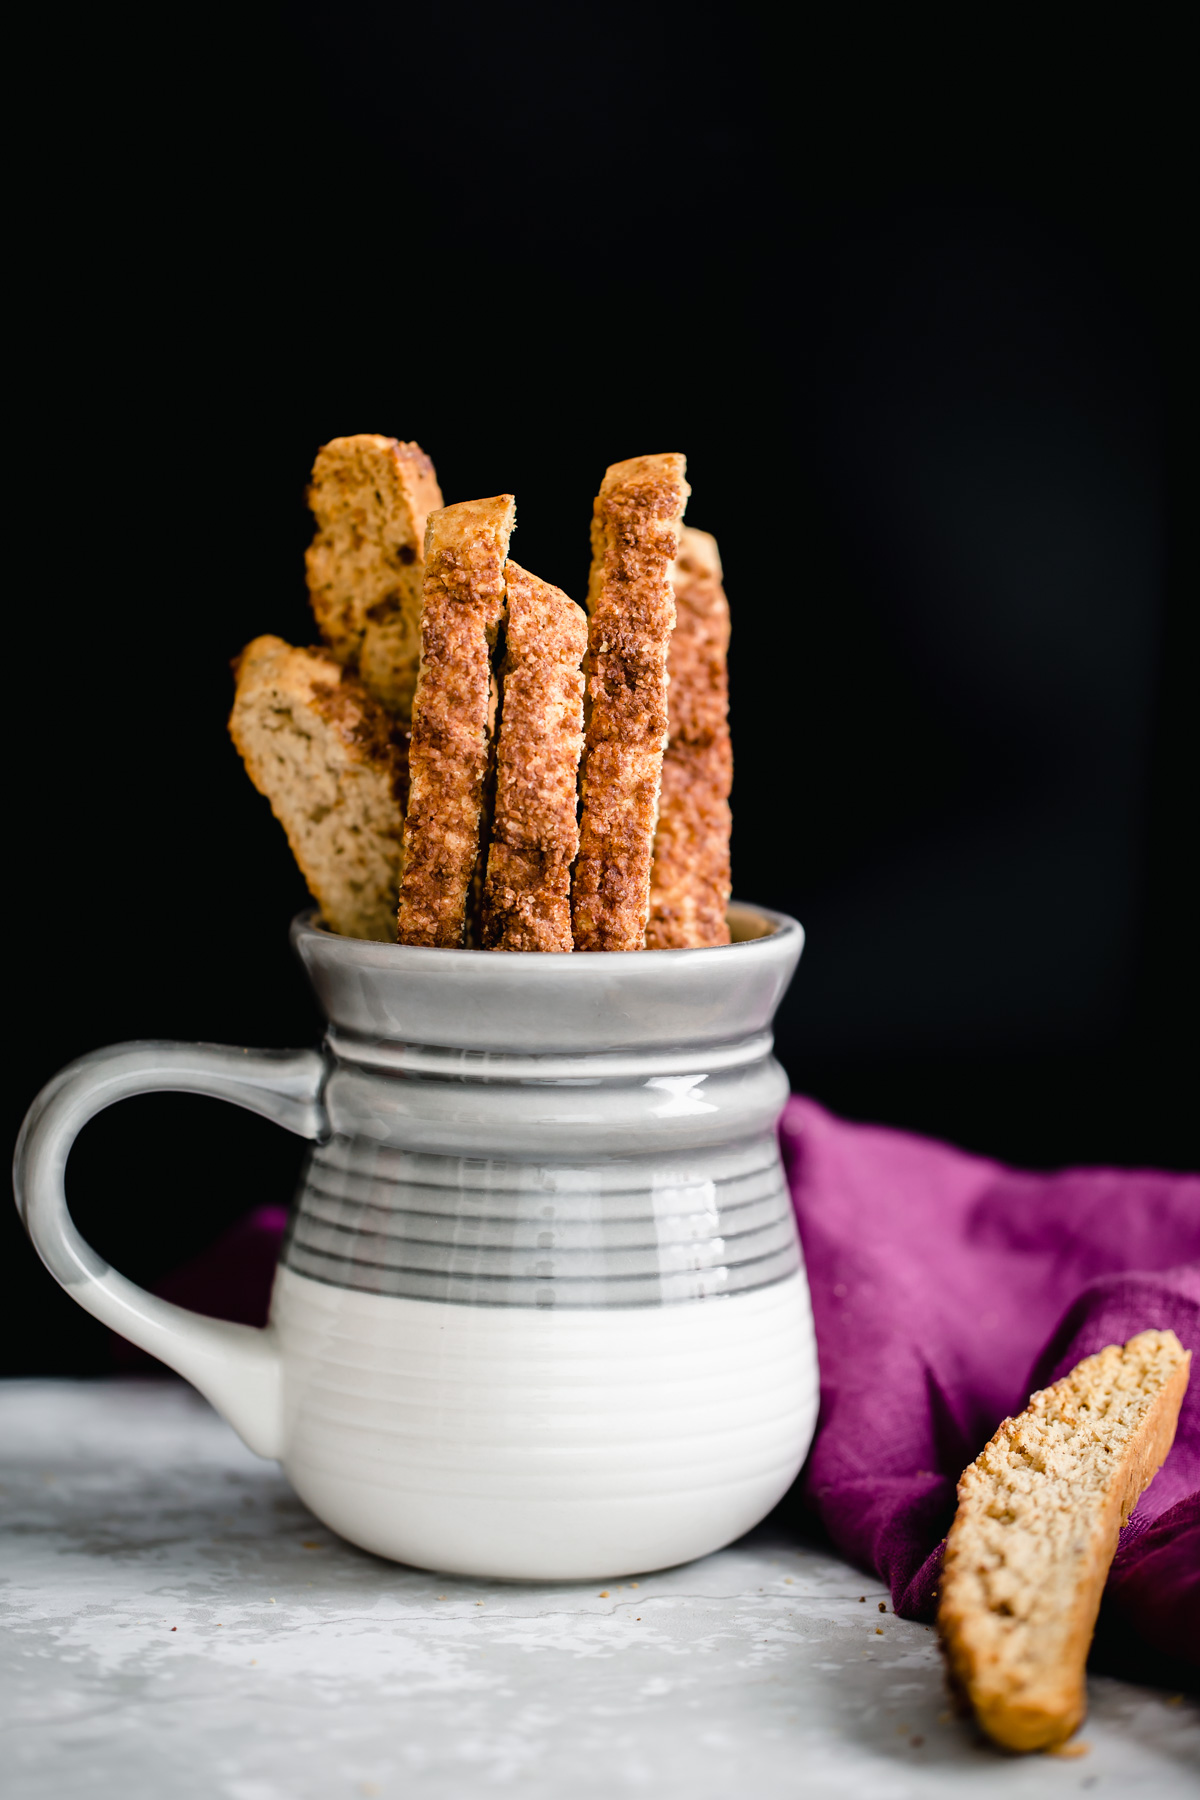 homemade vegan churro biscotti peaking out of a grey and white coffee mug